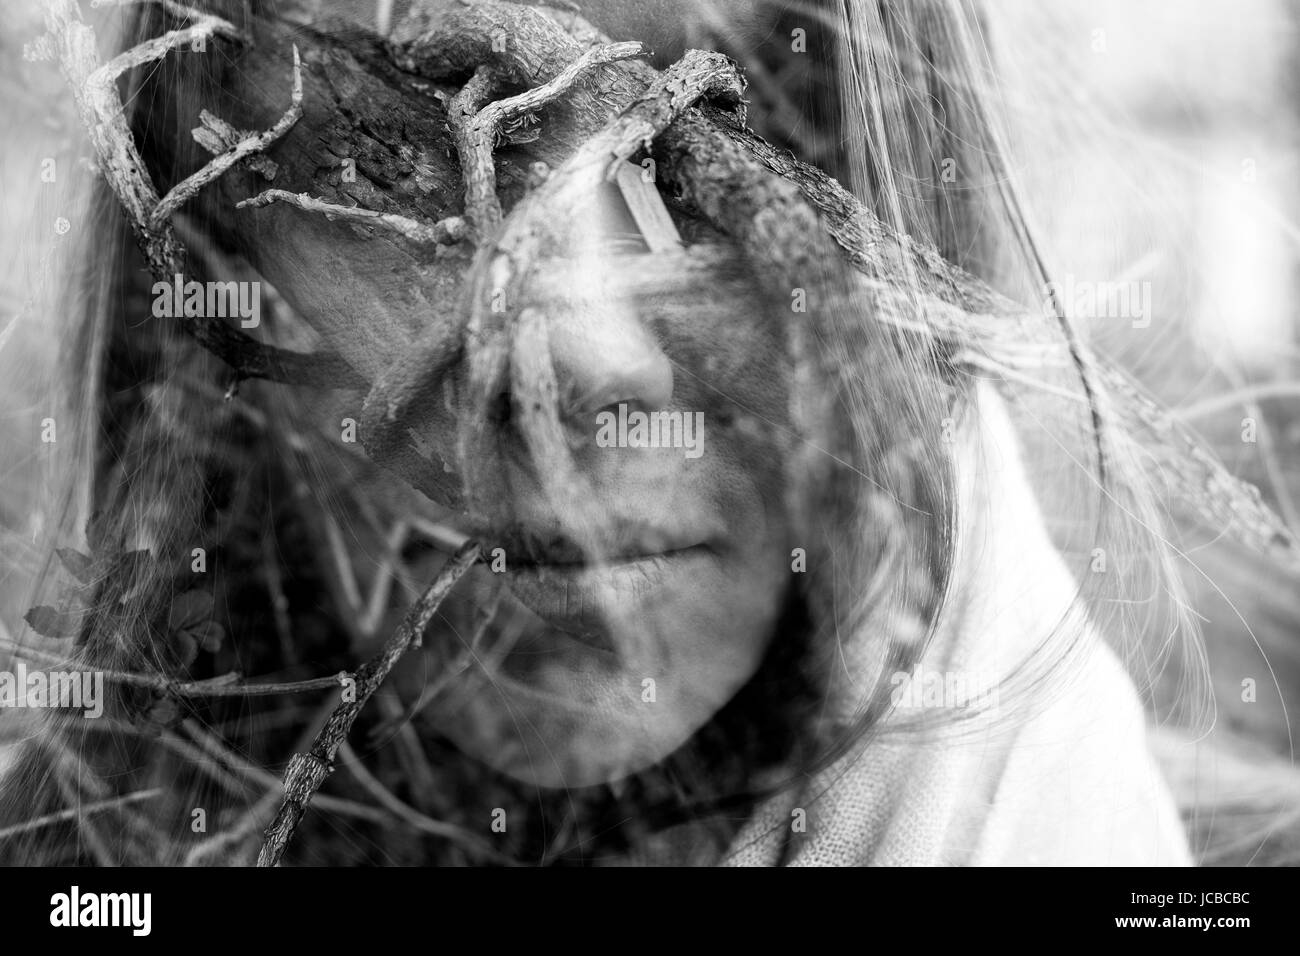 Double exposure creative photo of sad woman Stock Photo